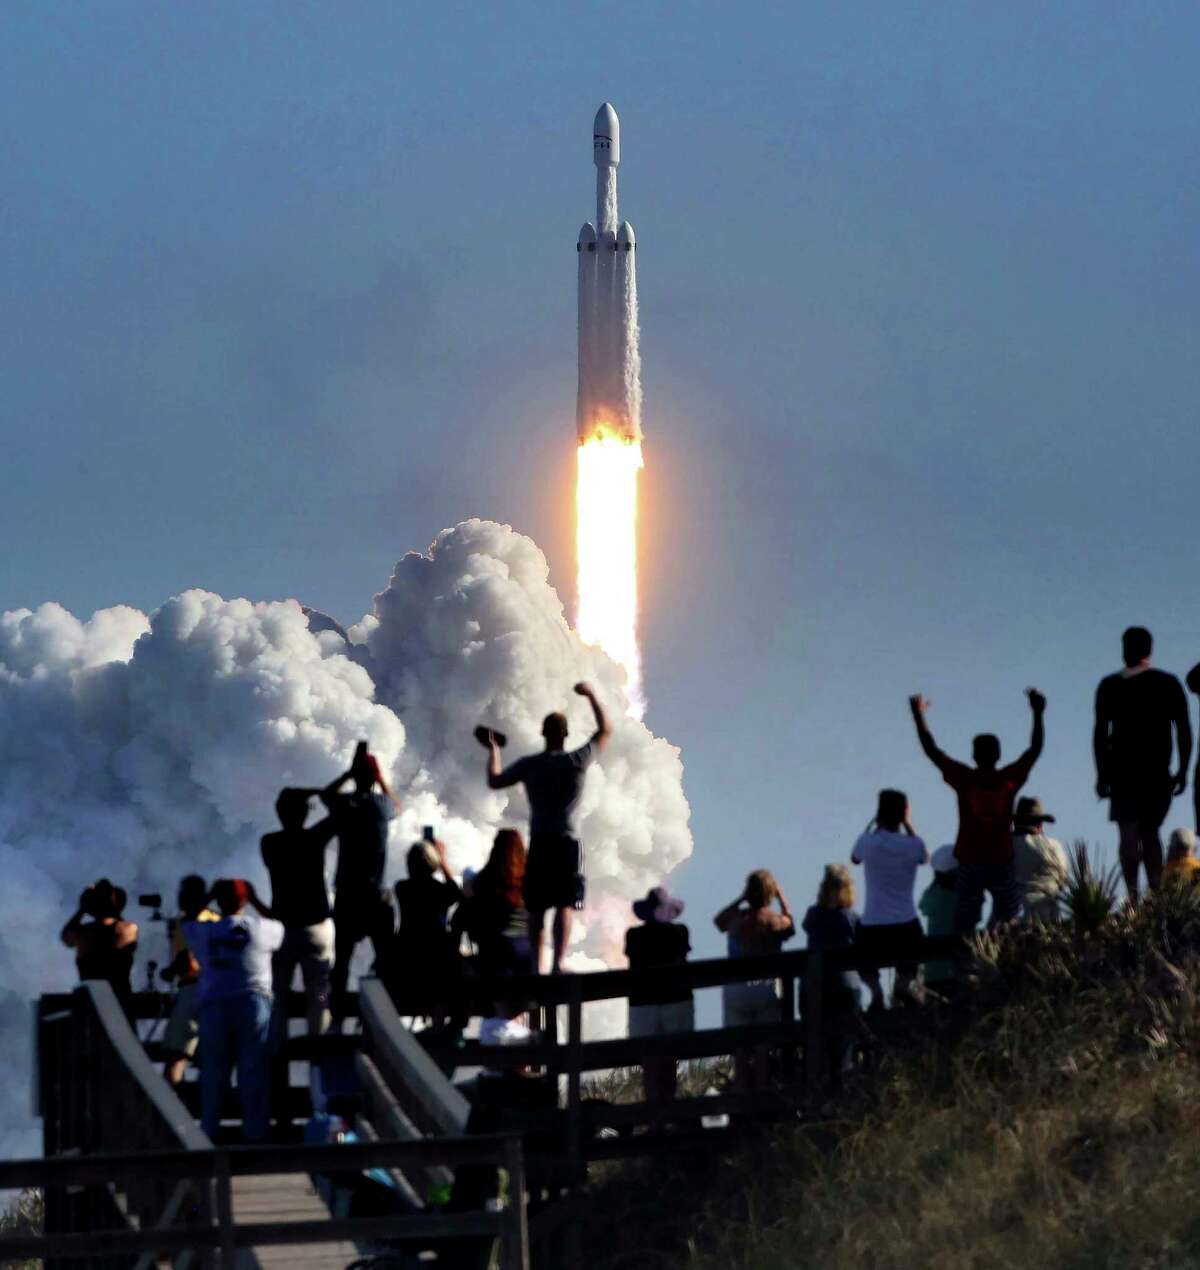 The crowd cheers the launch Tuesday of the SpaceX Falcon Heavy rocket at Cape Canaveral. The launch pad was the same one used by NASA nearly 50 years ago for the Apollo 11 moon mission.